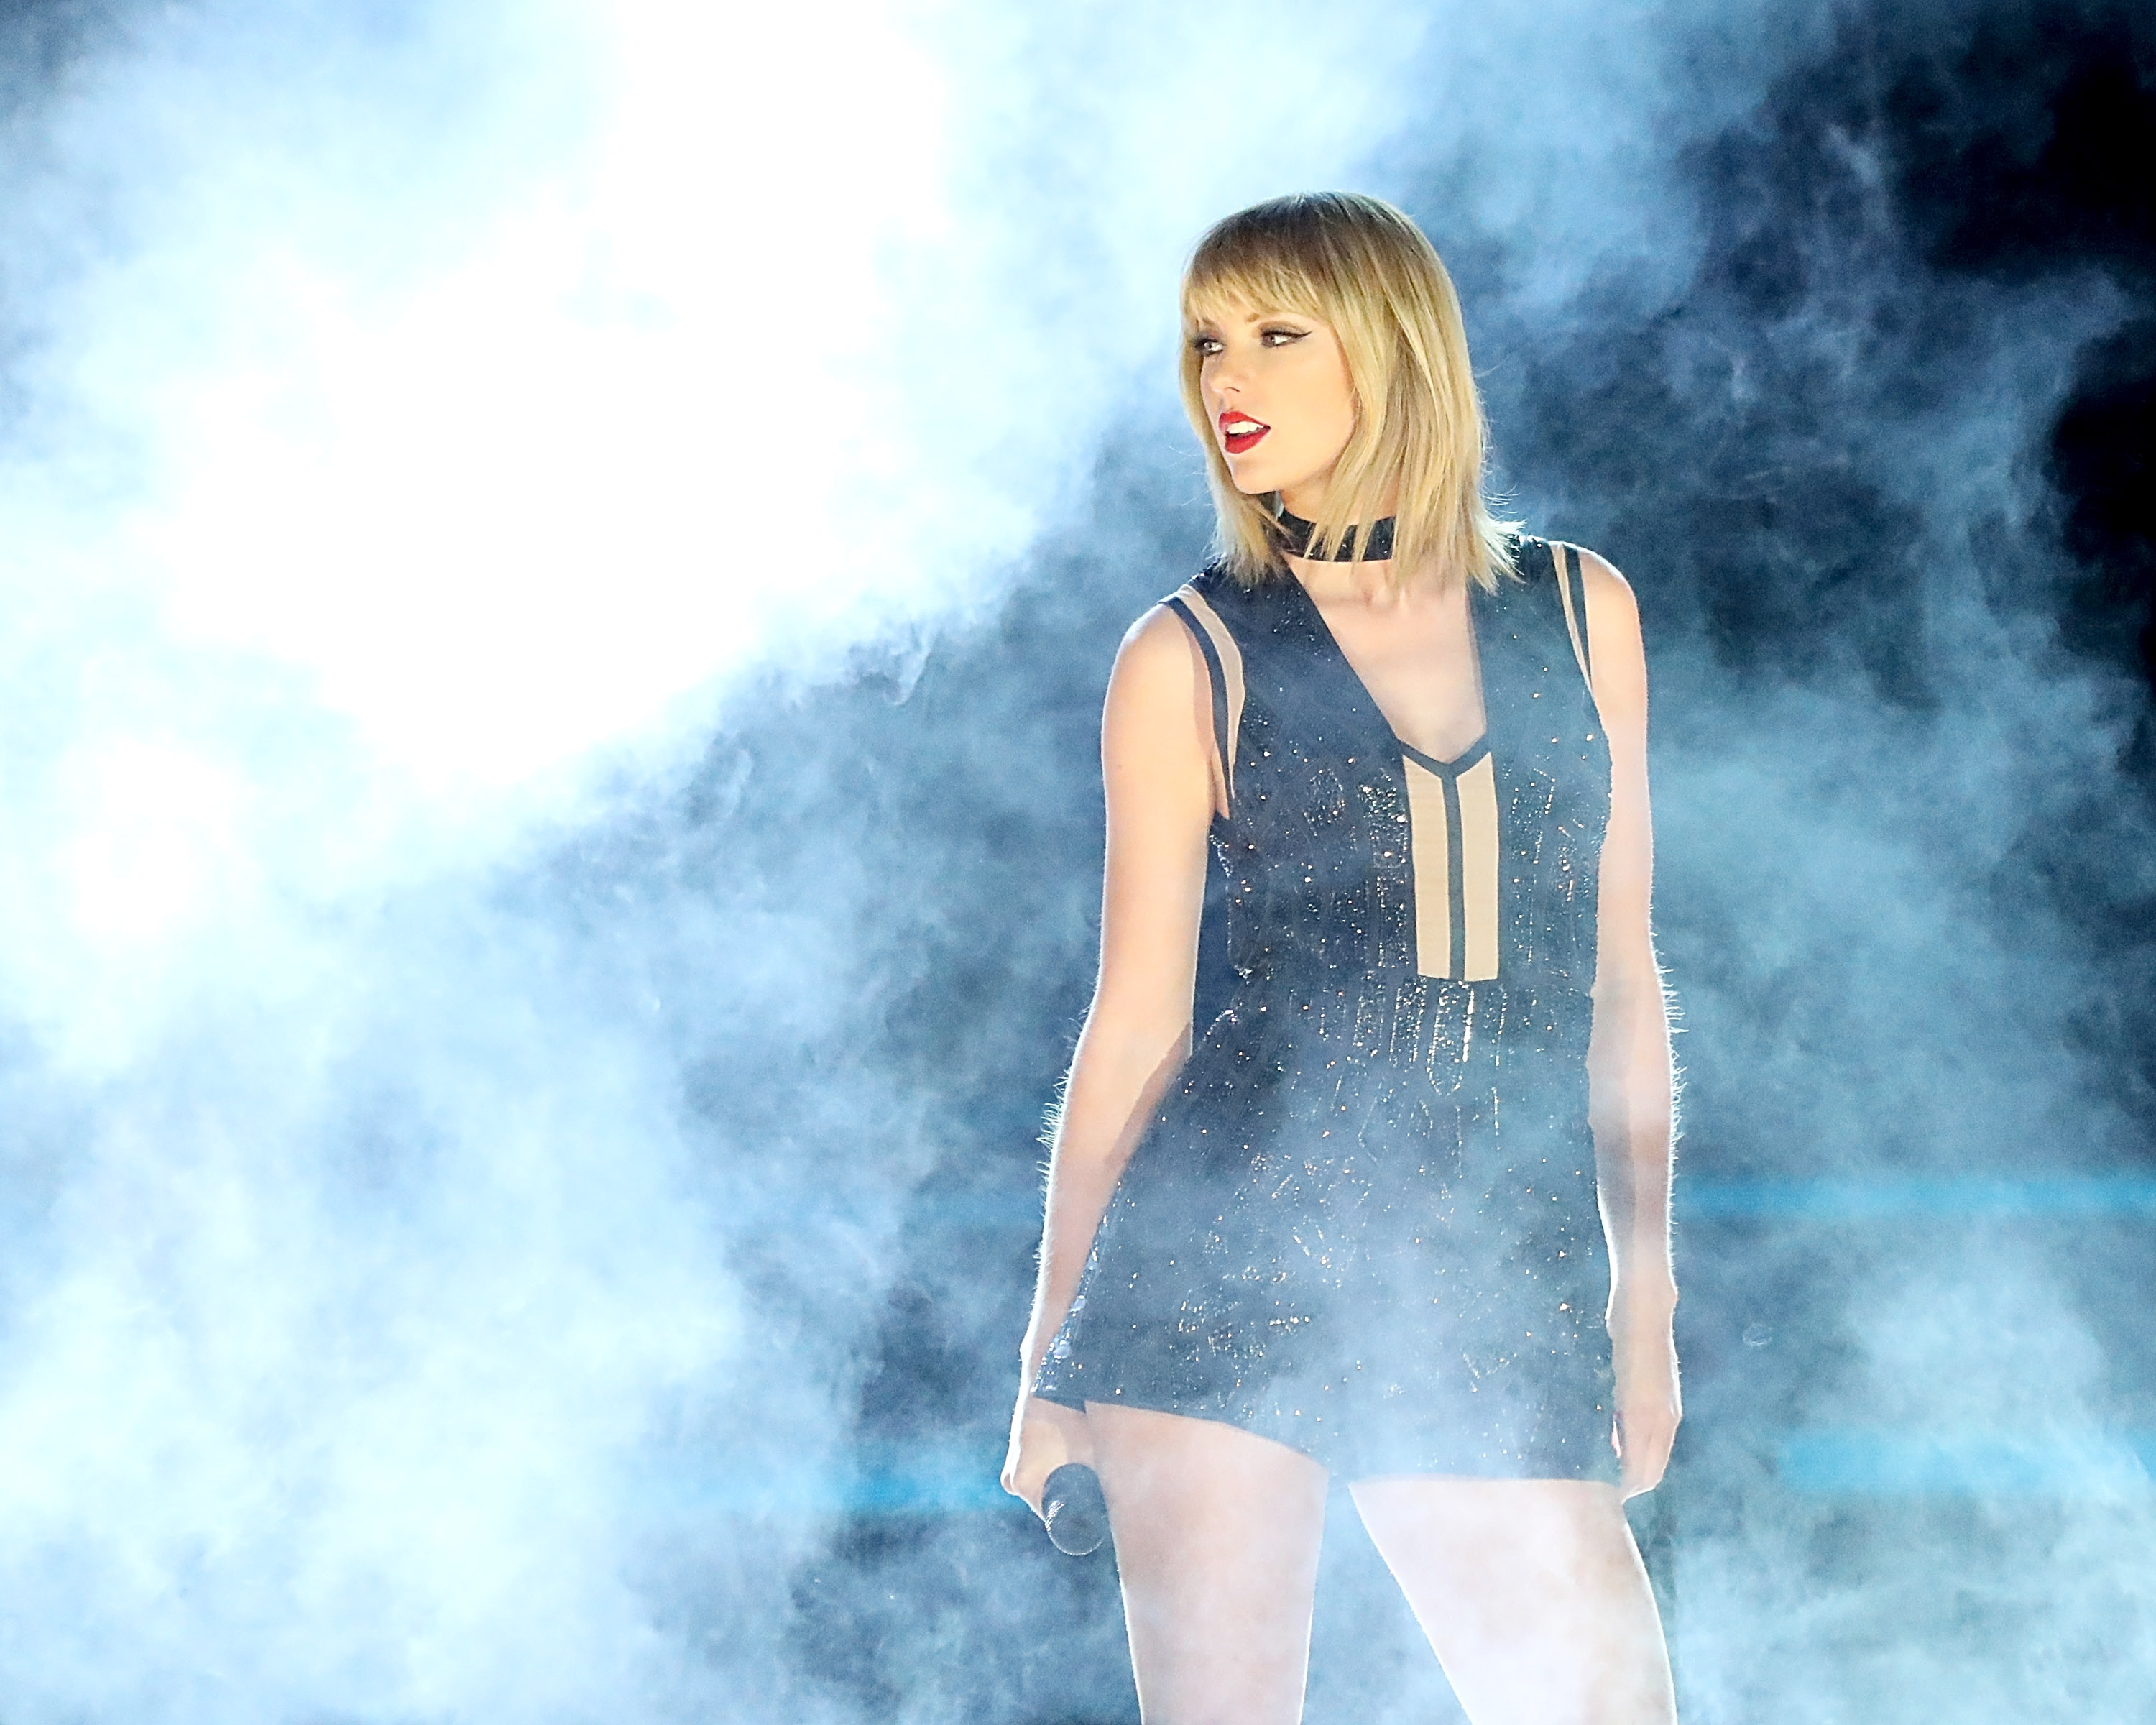 Taylor Swift performs her only full concert of 2016 during the Formula 1 United States Grand Prix at Circuit of The Americas on October 22, 2016 in Austin, Texas.